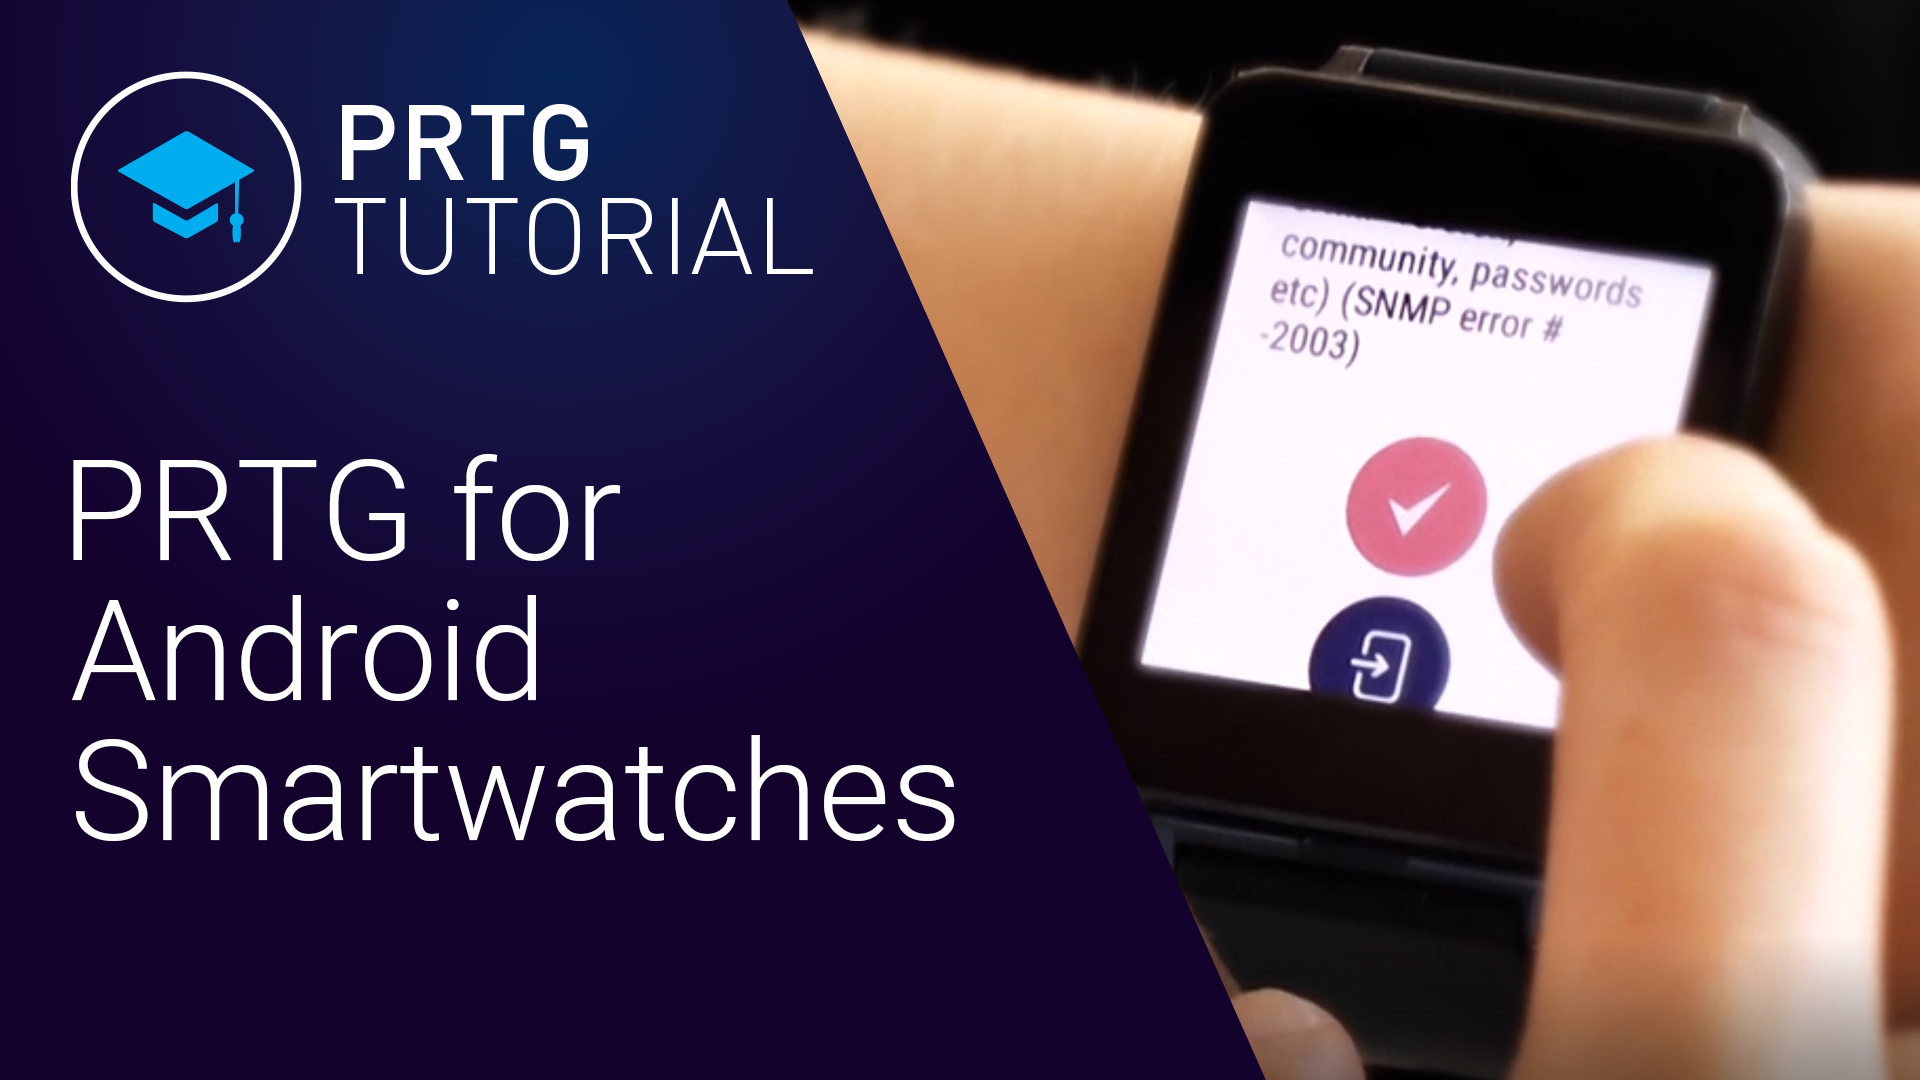 PRTG POUR L'APPLICATION WATCH SOUS ANDROID WEAR (Videos)